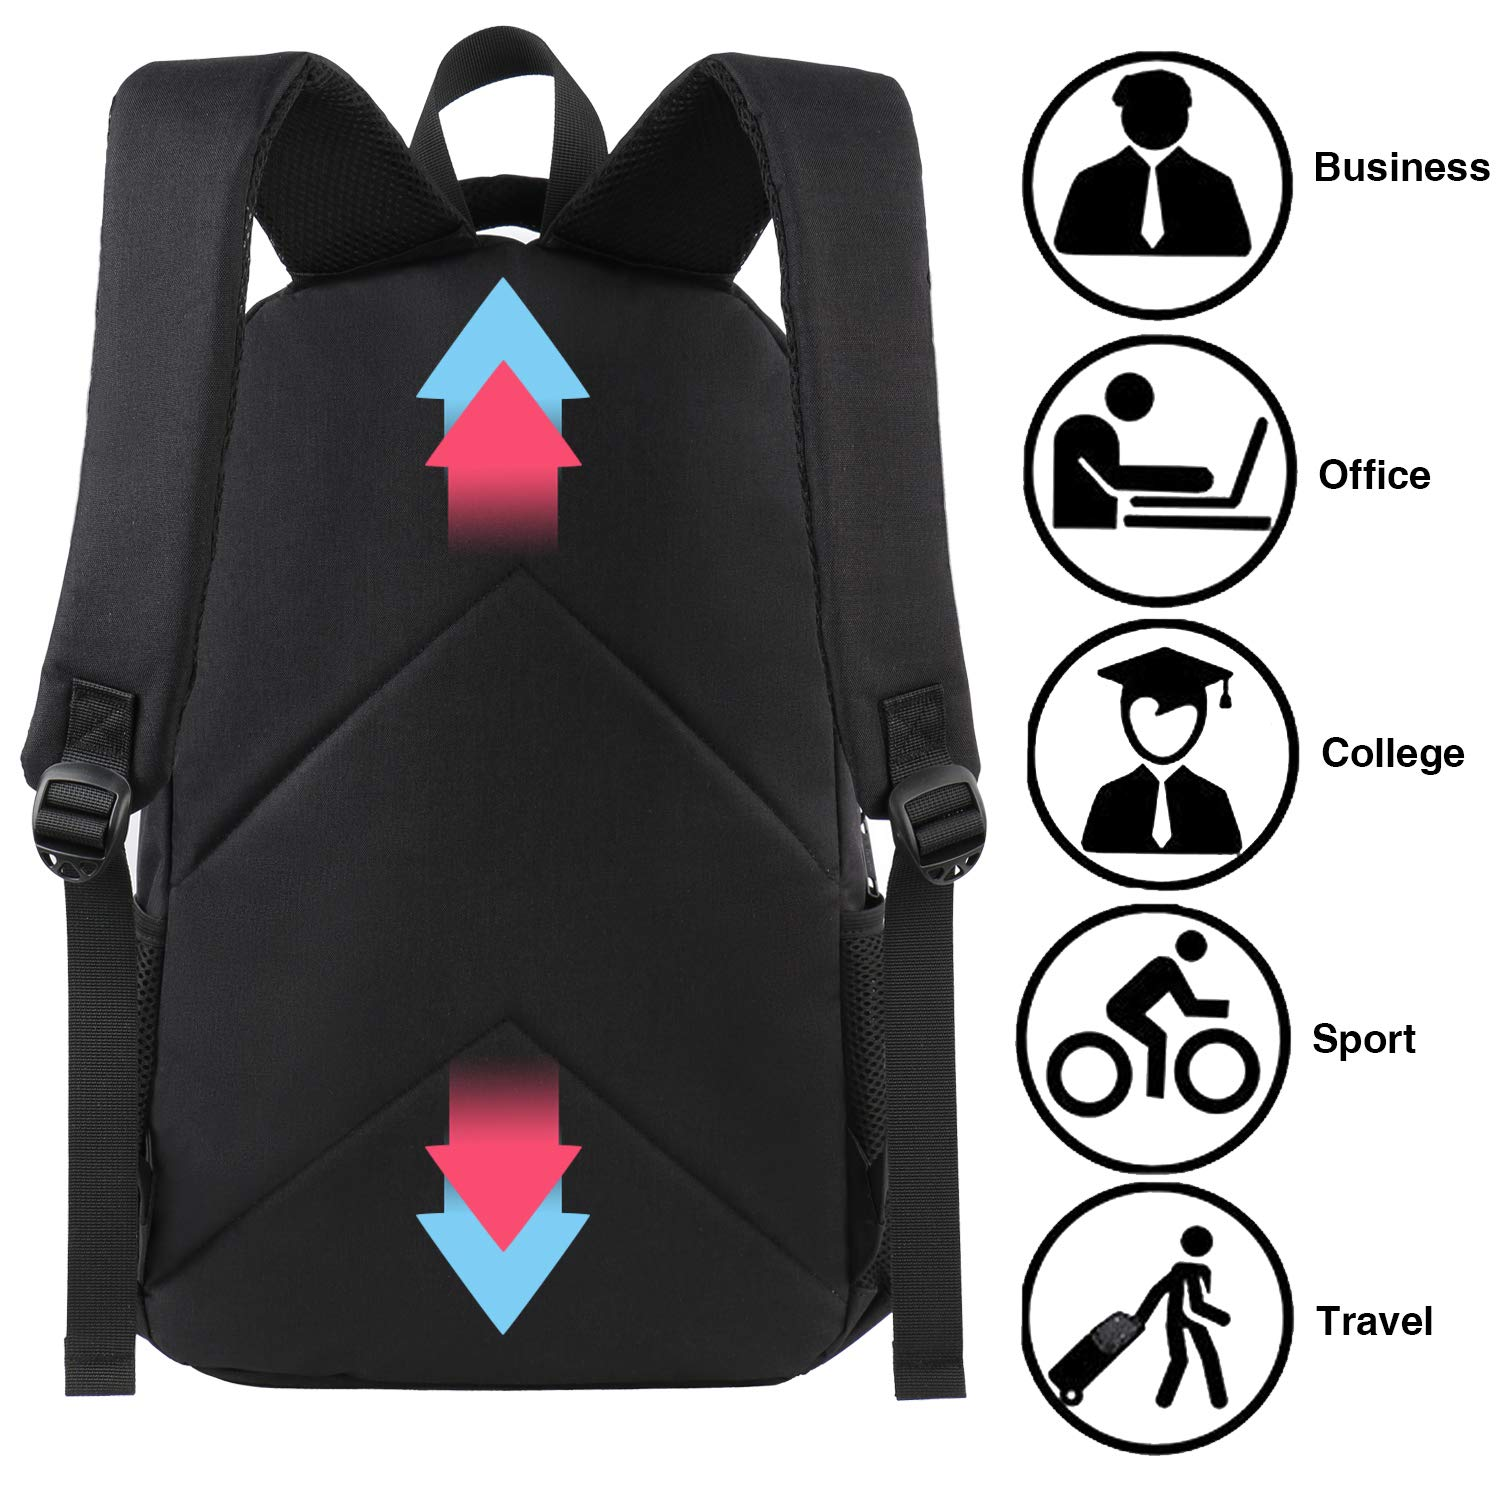 with Anti Theft Bag /& Charging Port Water Resistant for 15.6 Notebook-Black MATEIN 15 Inch Student Laptop Backpack